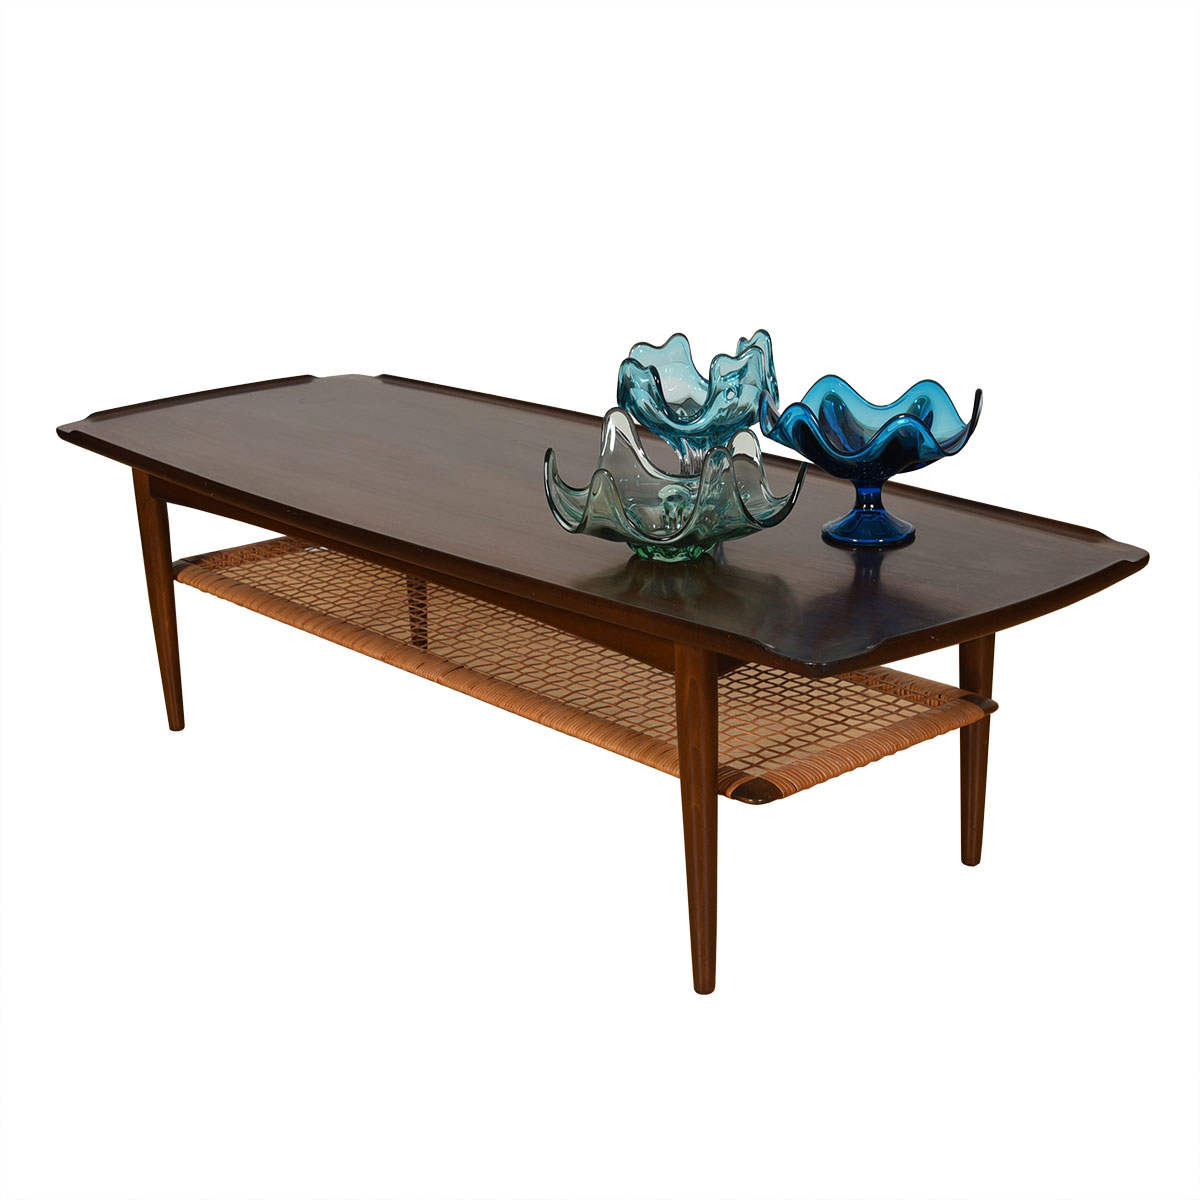 Walnut Danish Modern Coffee Table w/ Cane Shelf